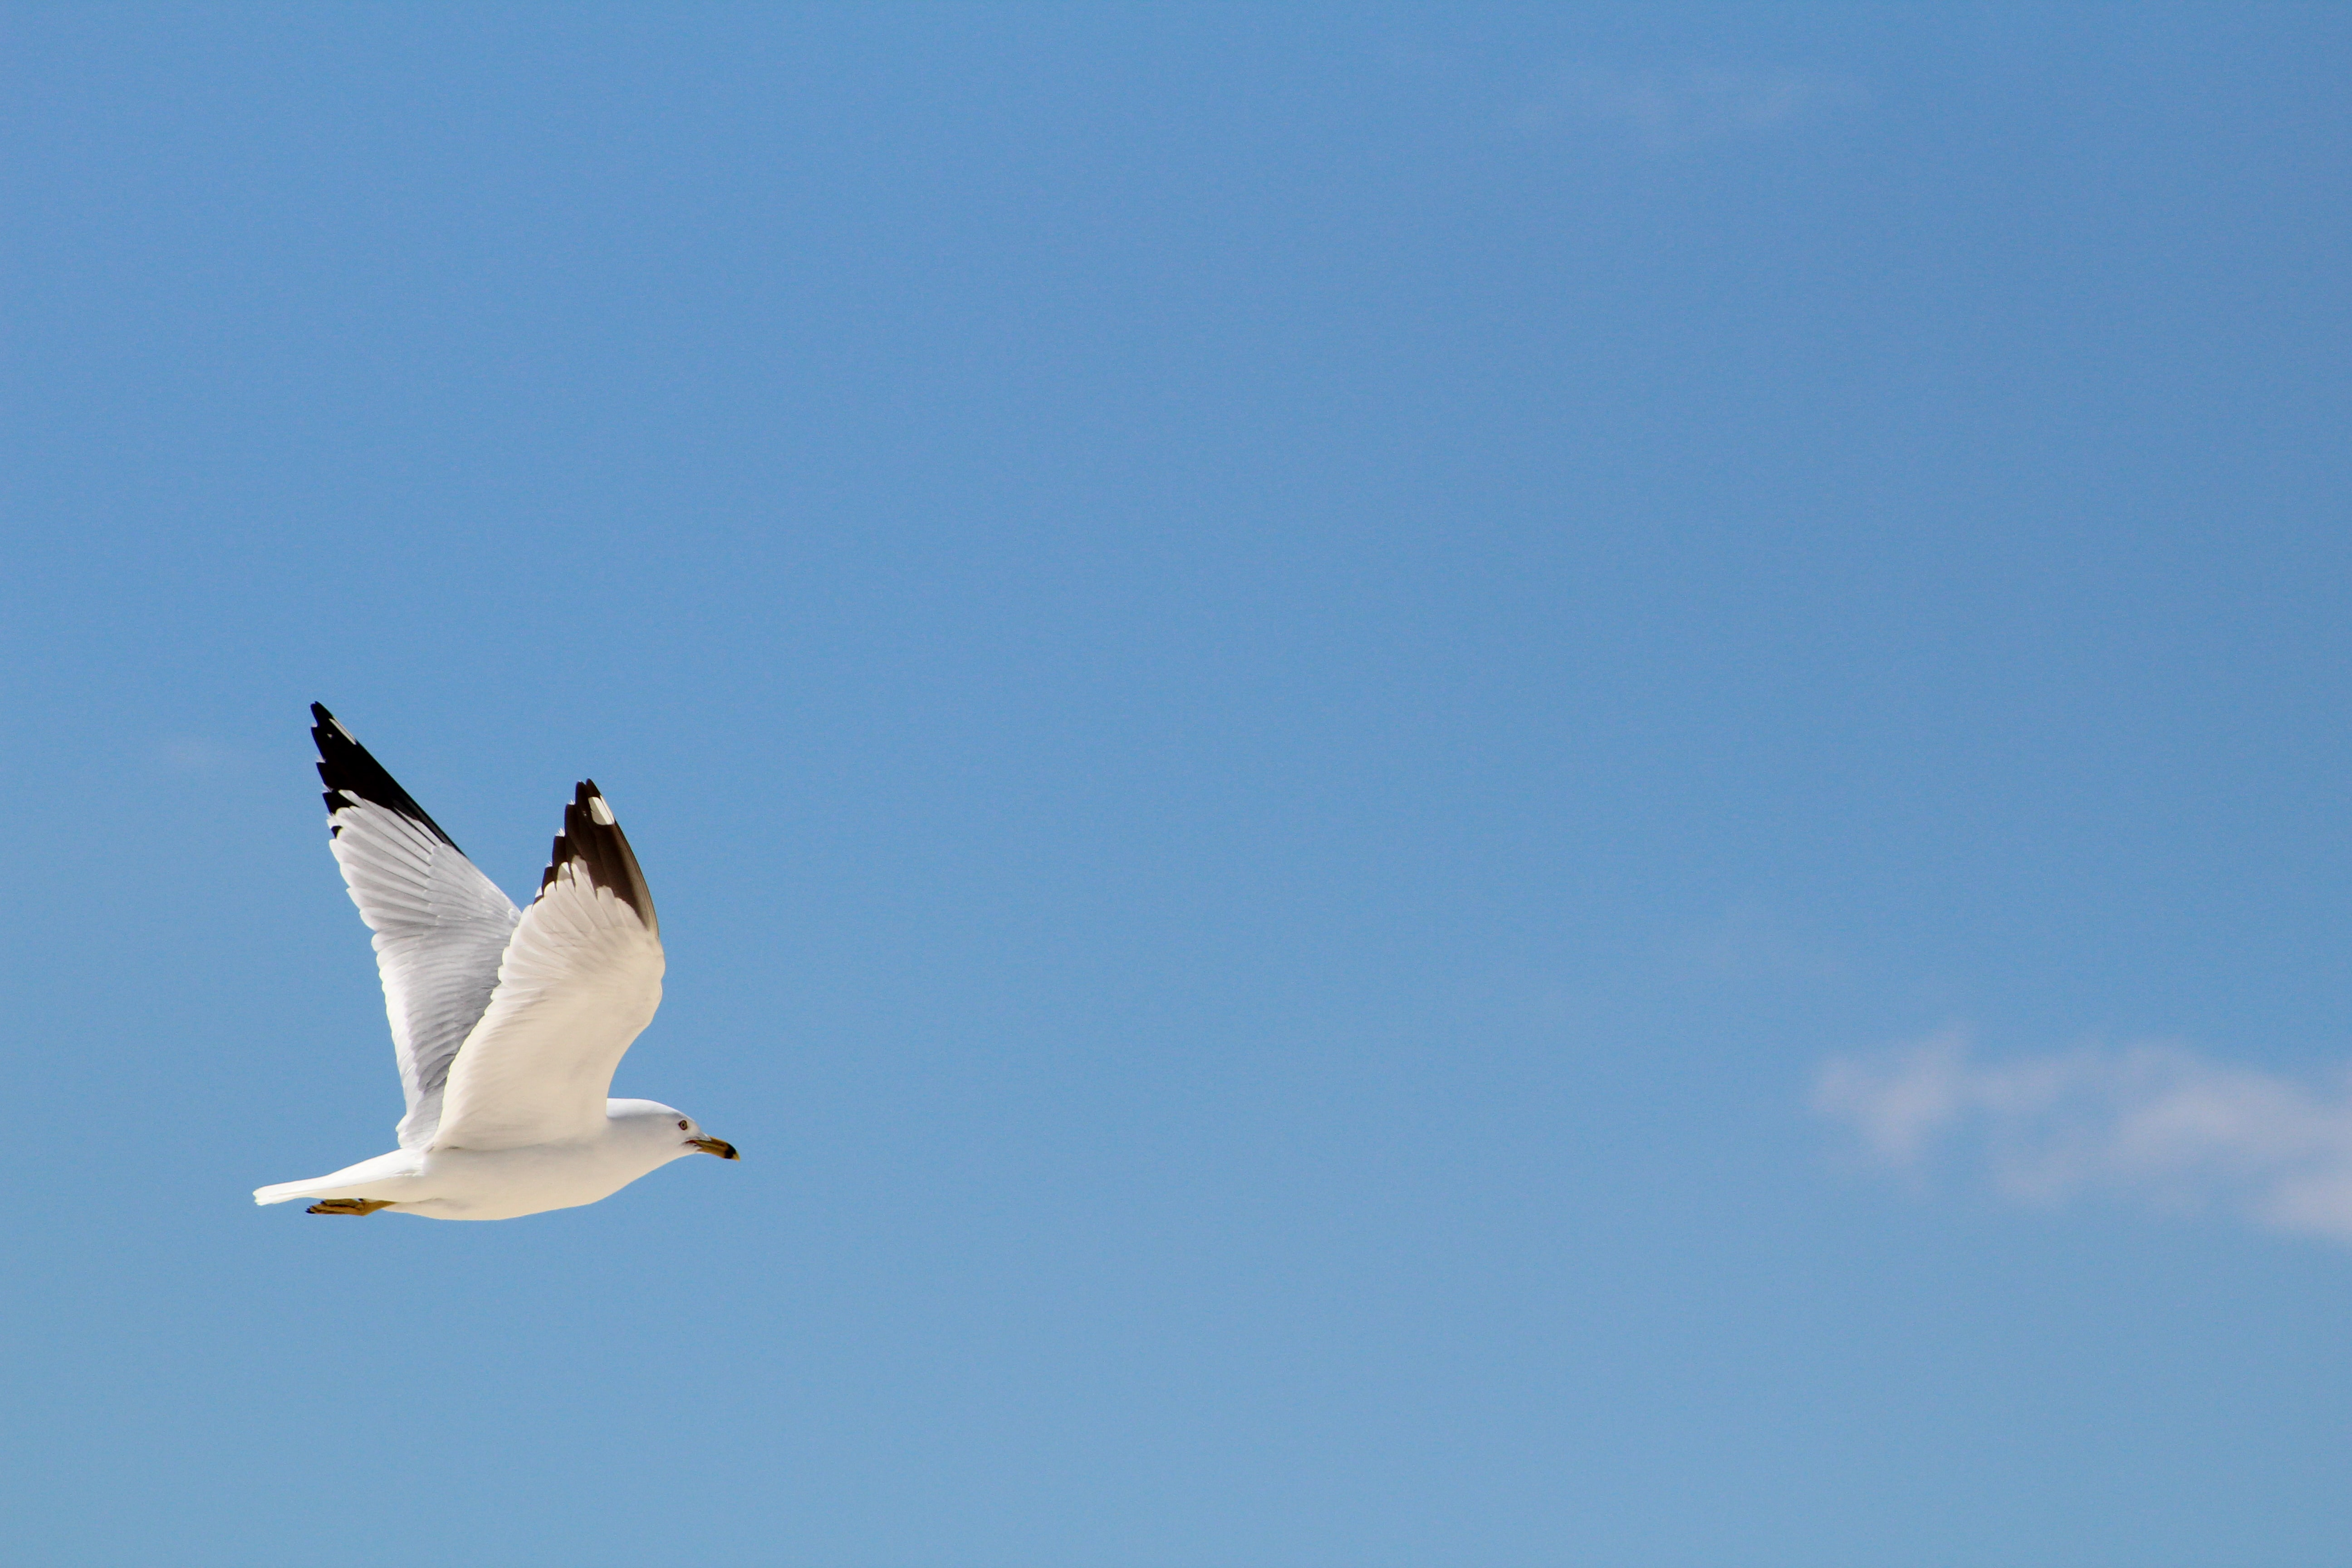 white and brown seagull flying in sky